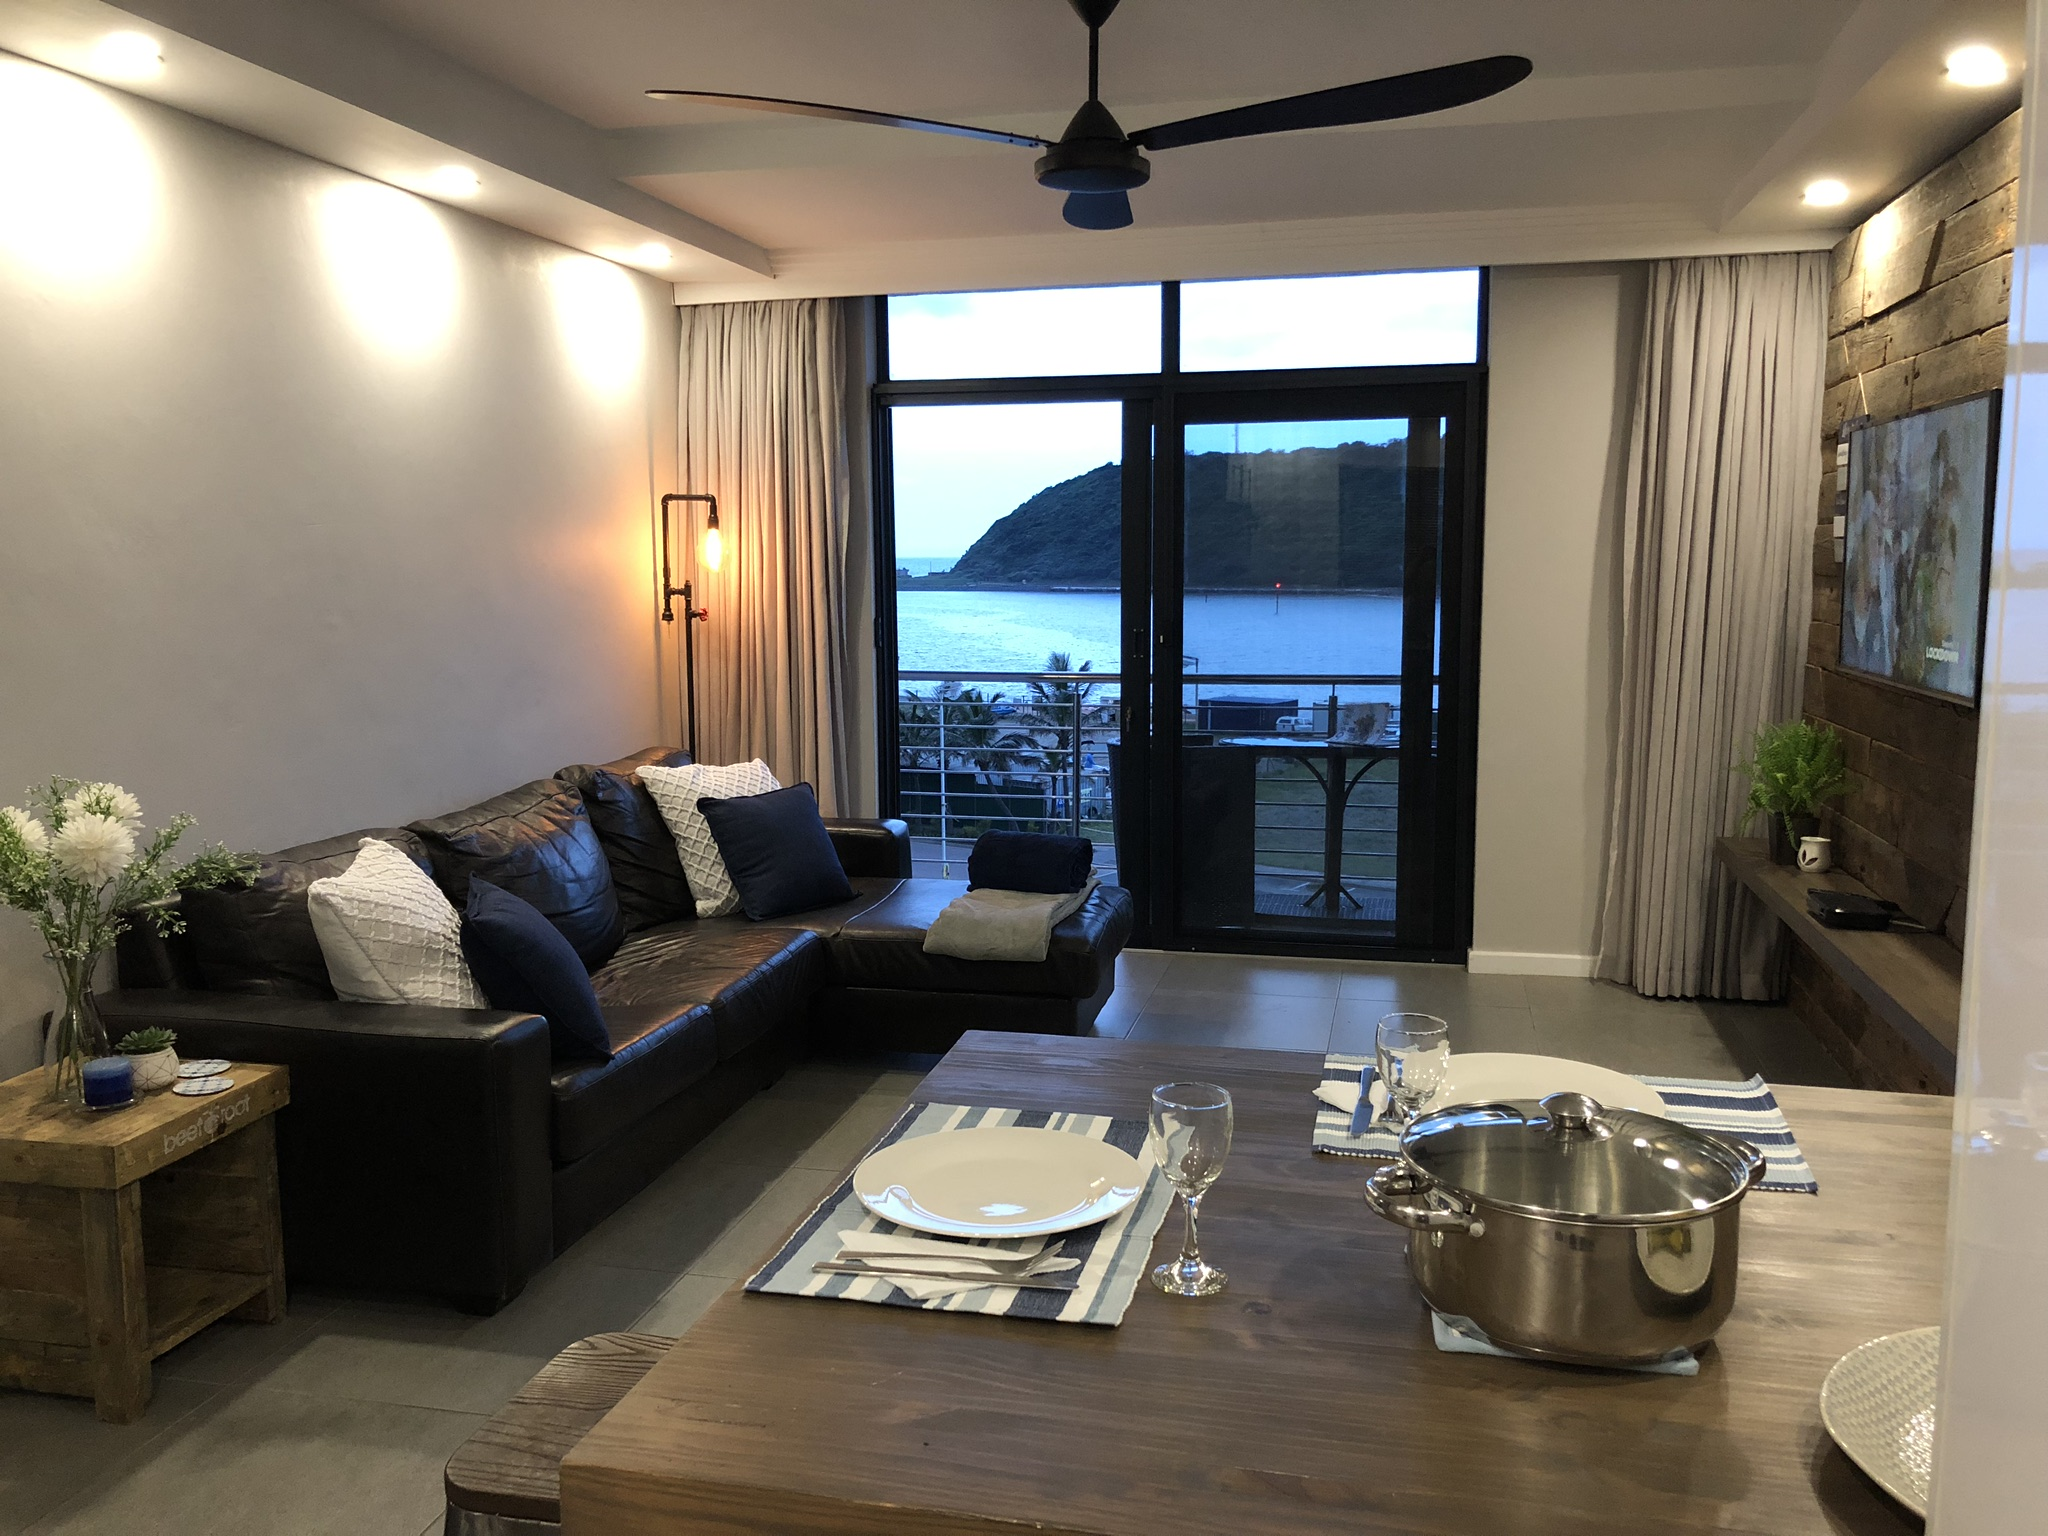 1 Bedroom Apartment For Sale in Point Waterfront